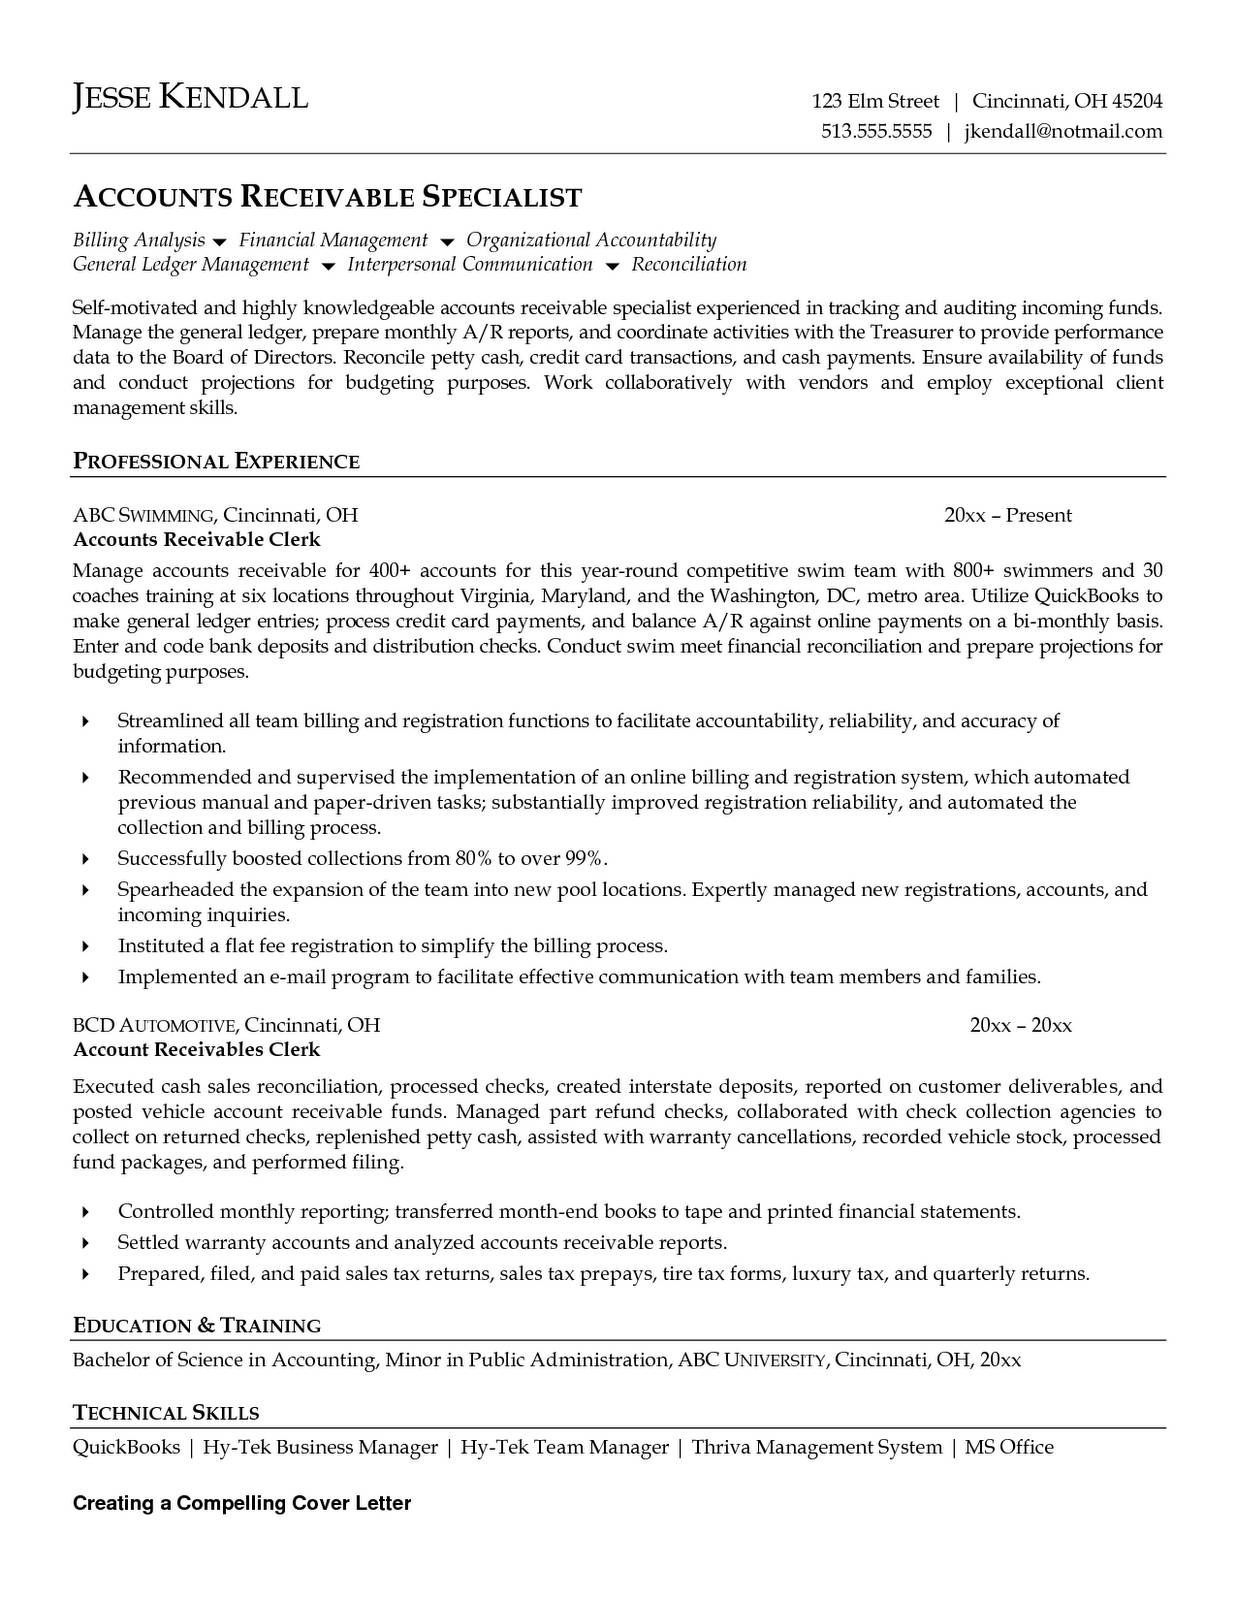 Resume Examples Accounts Payable Resume Templates Accounts Receivable Job Application Cover Letter Resume Examples